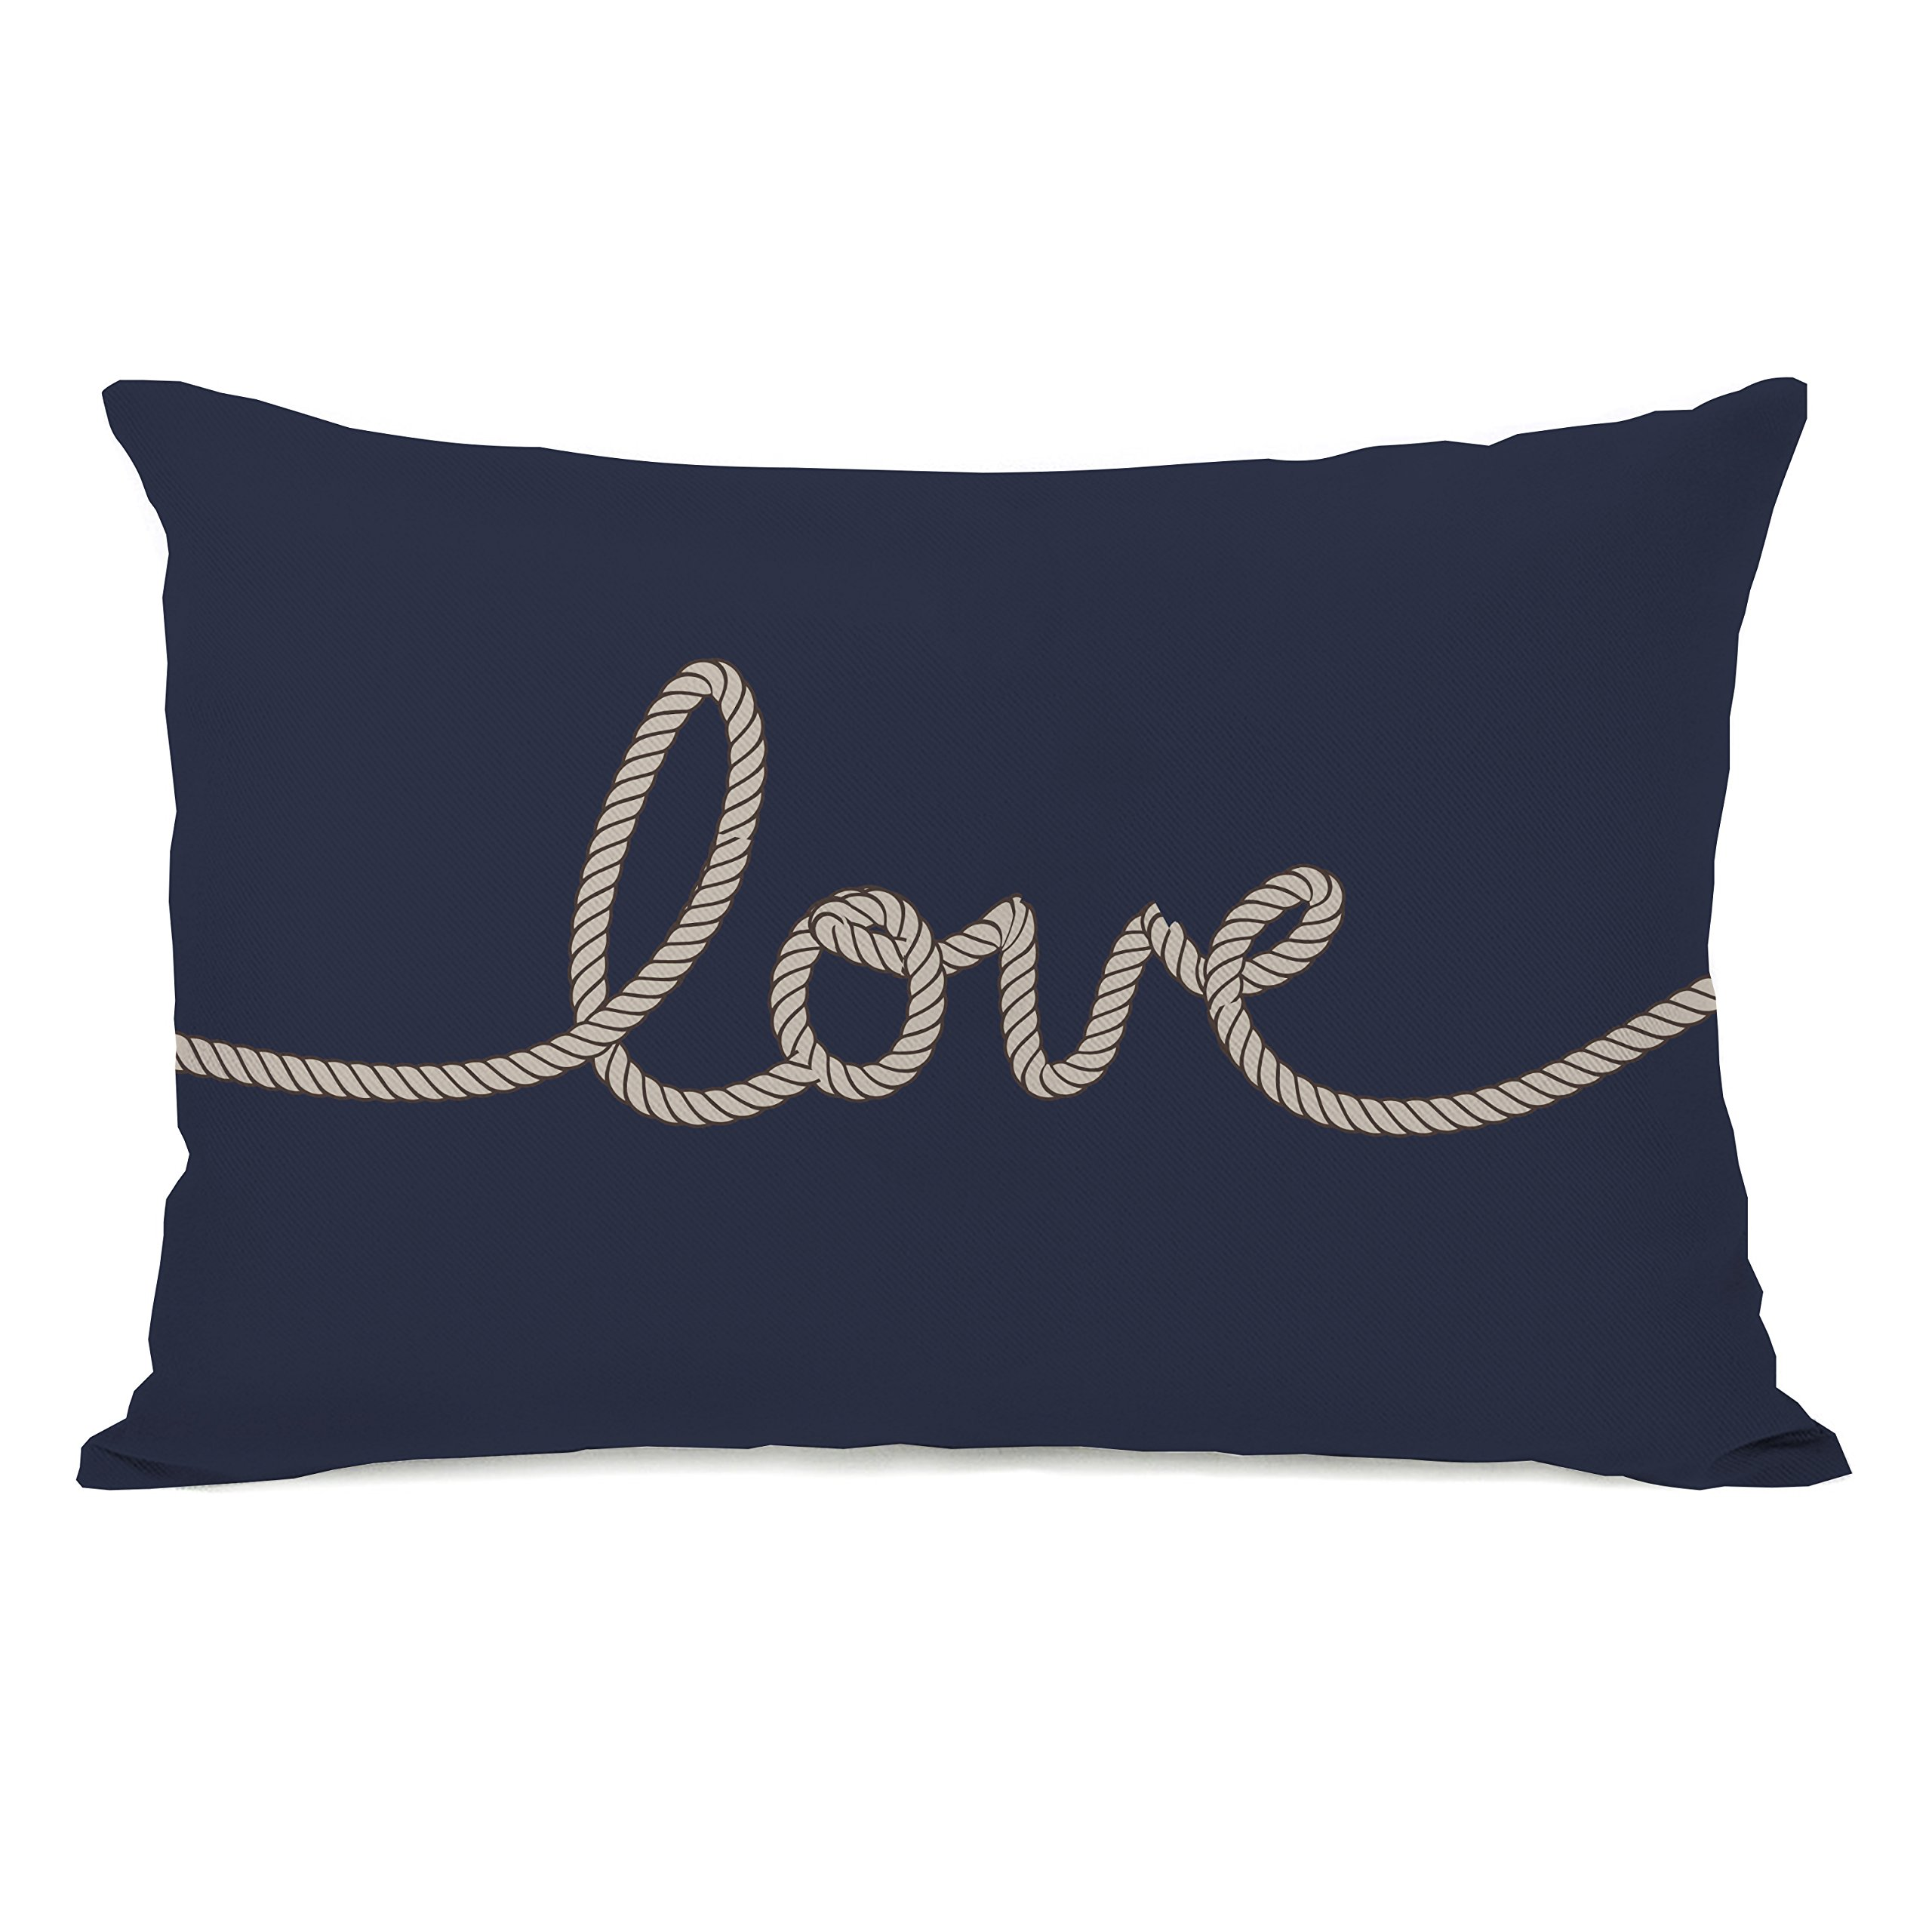 One Bella Casa Love Rope Lightweight Duvet Cover by OBC, Twin, Navy/Tan